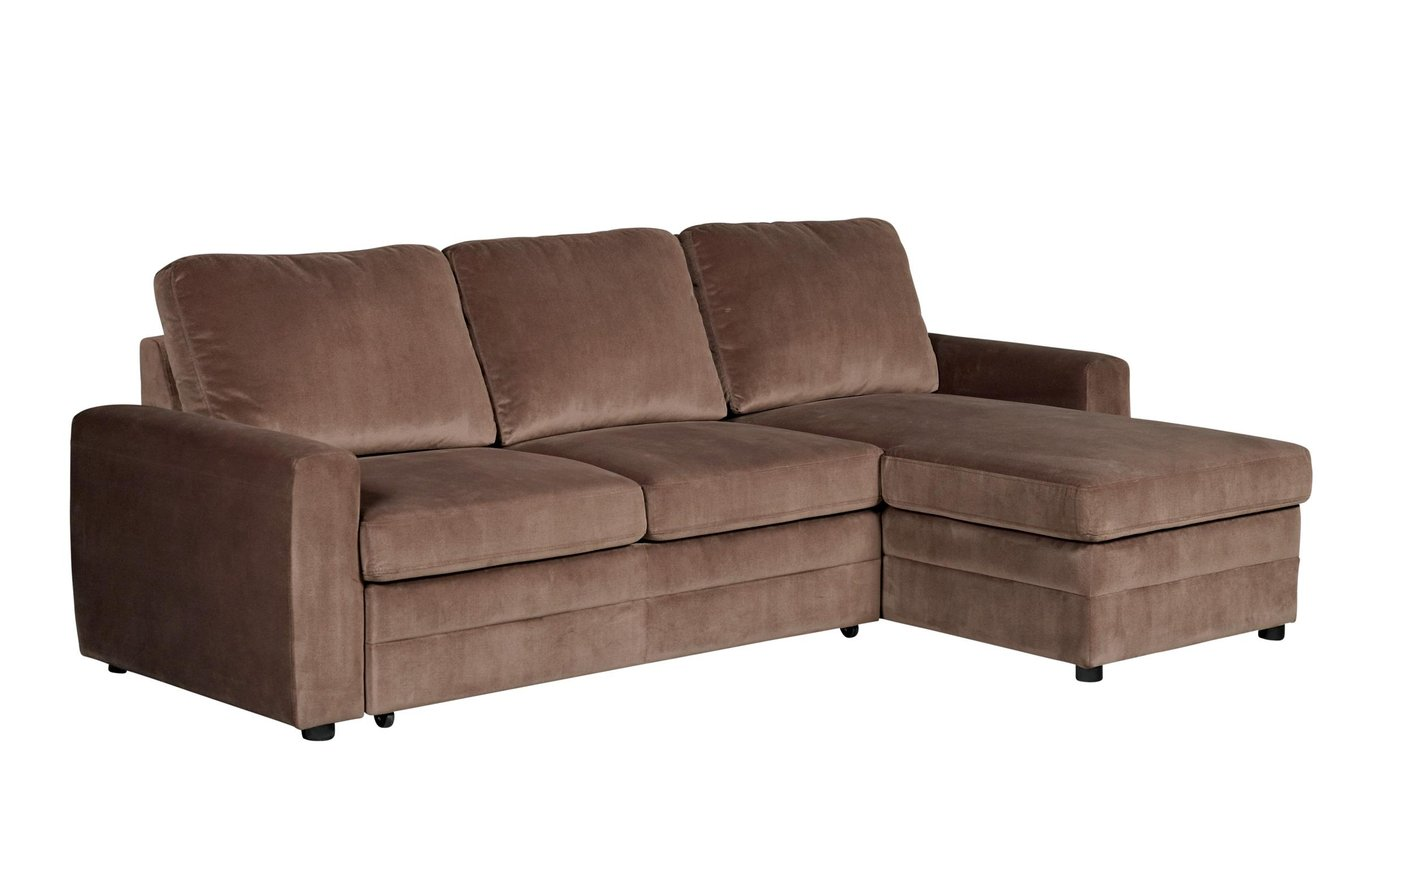 Coaster gus 503871 brown fabric sectional sofa steal a for Brown fabric couch